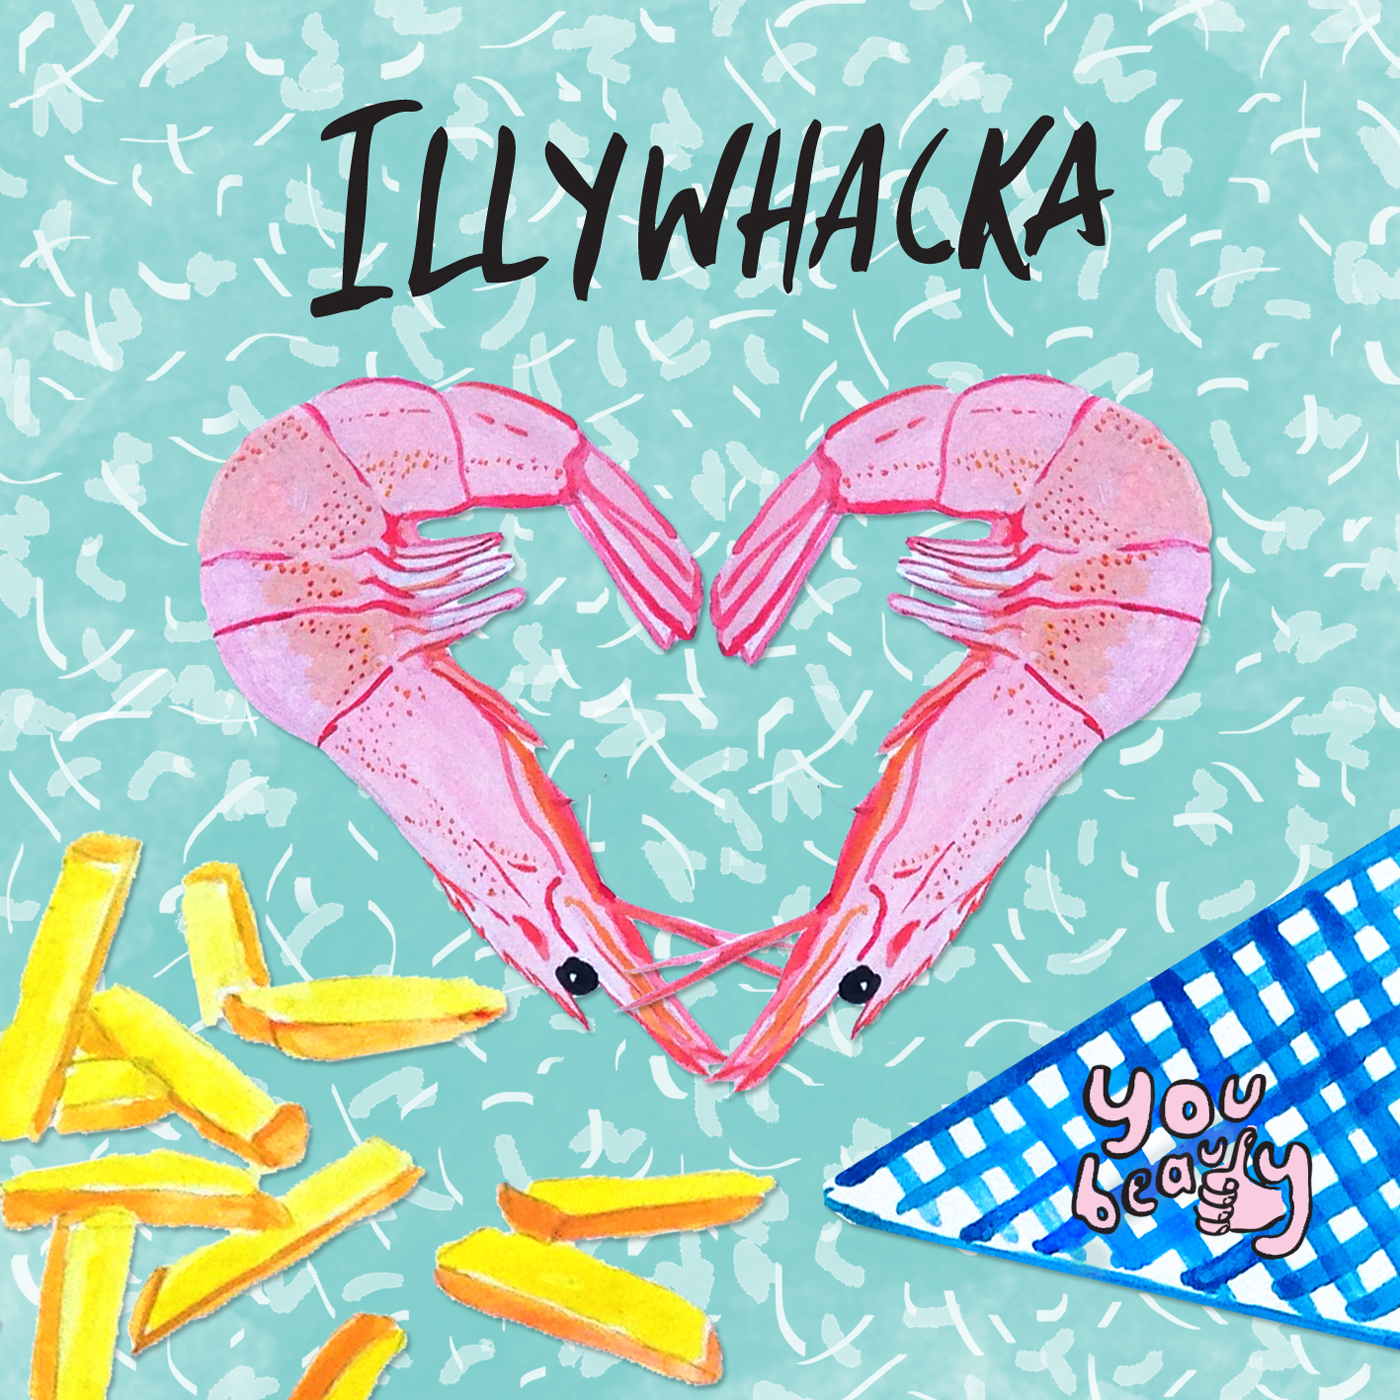 Illywhacka - Digital download